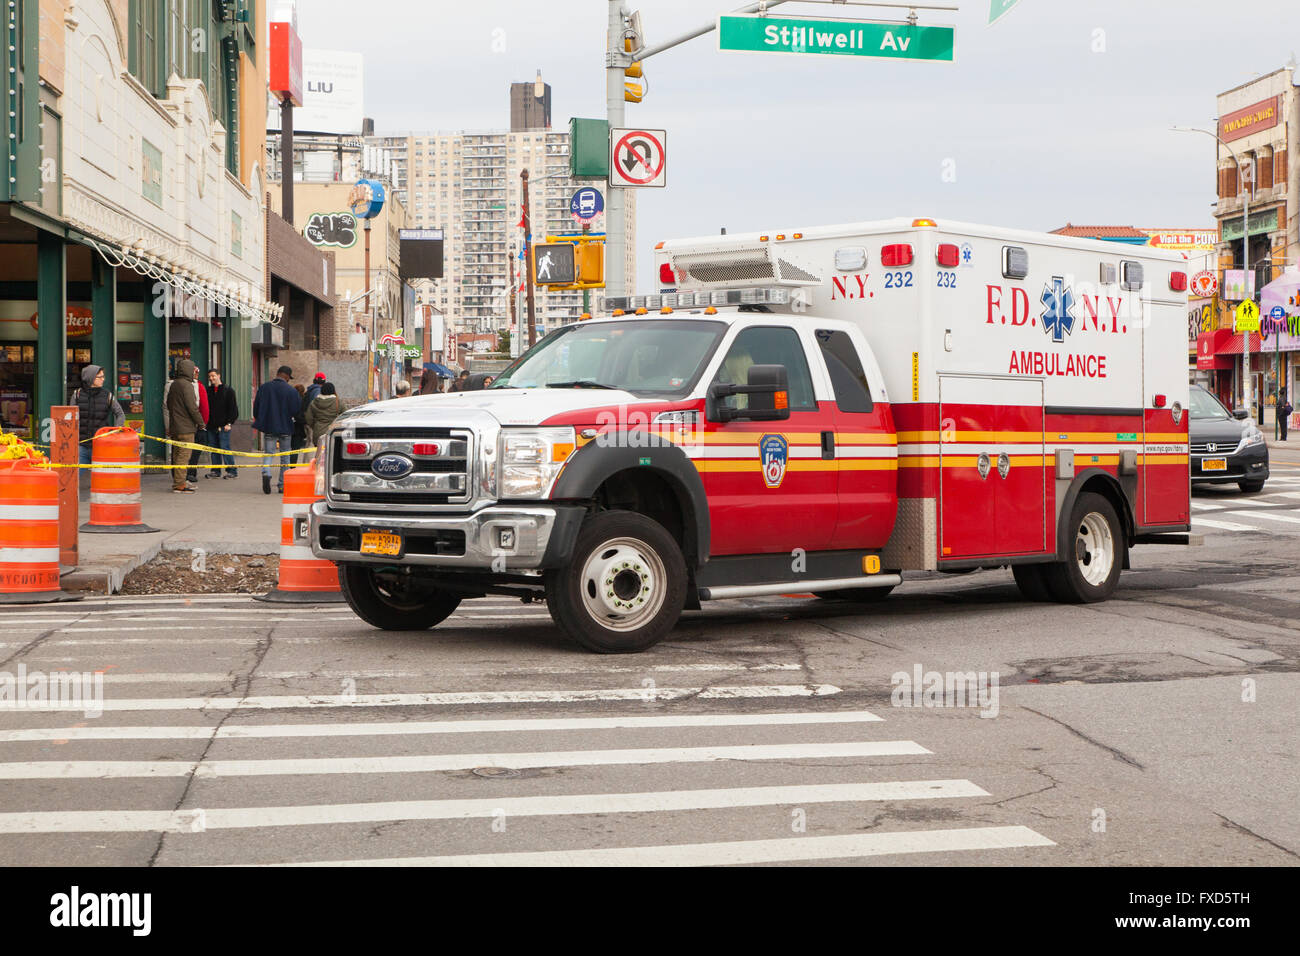 New york fire truck stock photos new york fire truck for Department of motor vehicles brooklyn ny